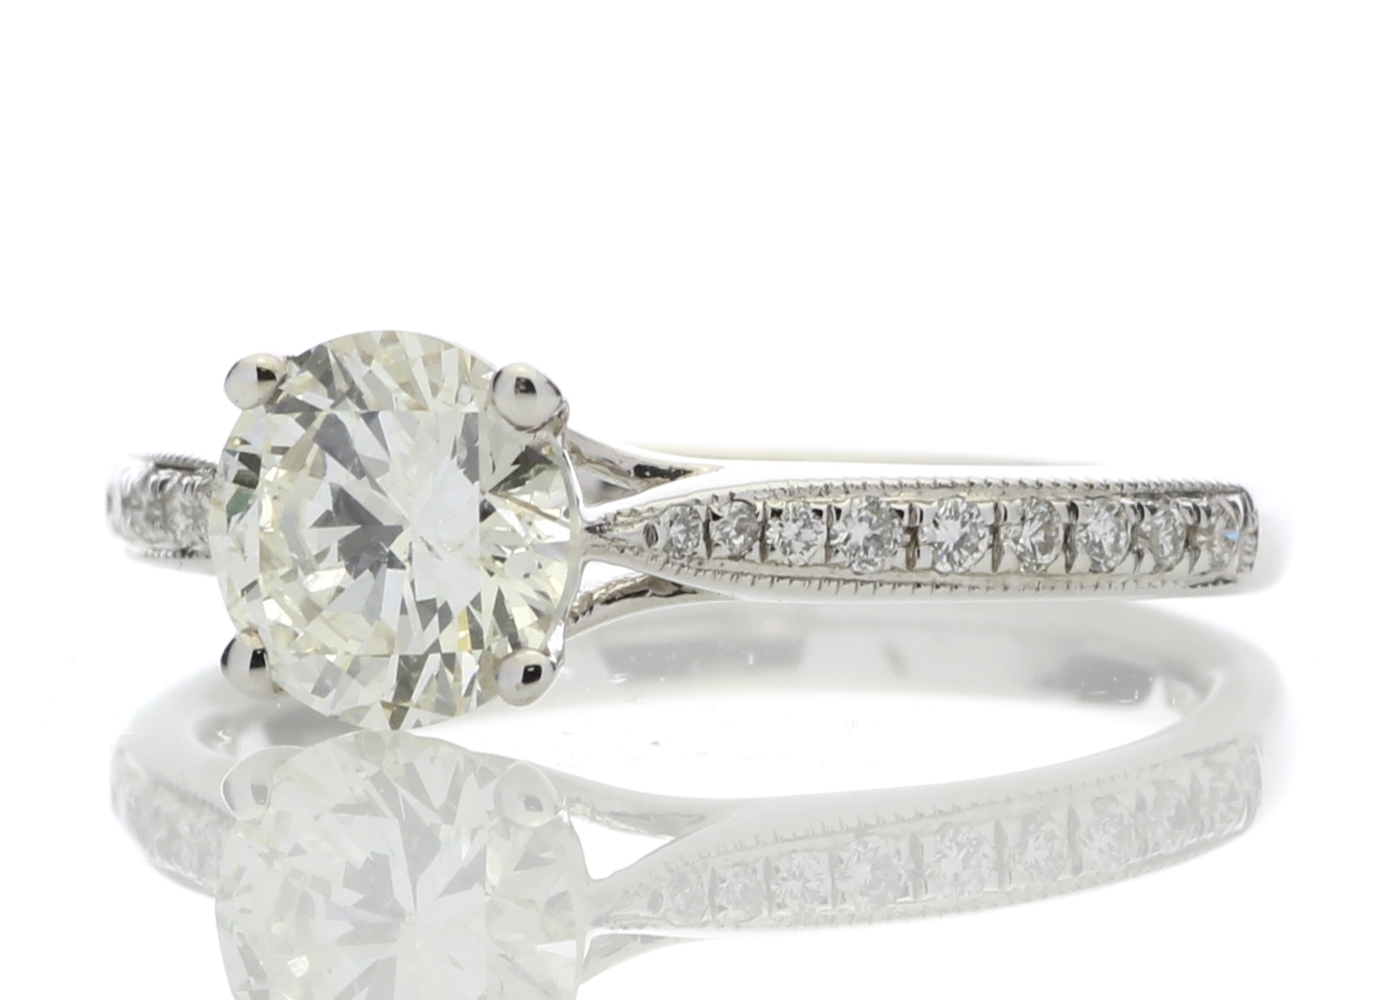 18ct White Gold Diamond Ring With Stone Set Shoulders 1.15 Carats - Image 2 of 5